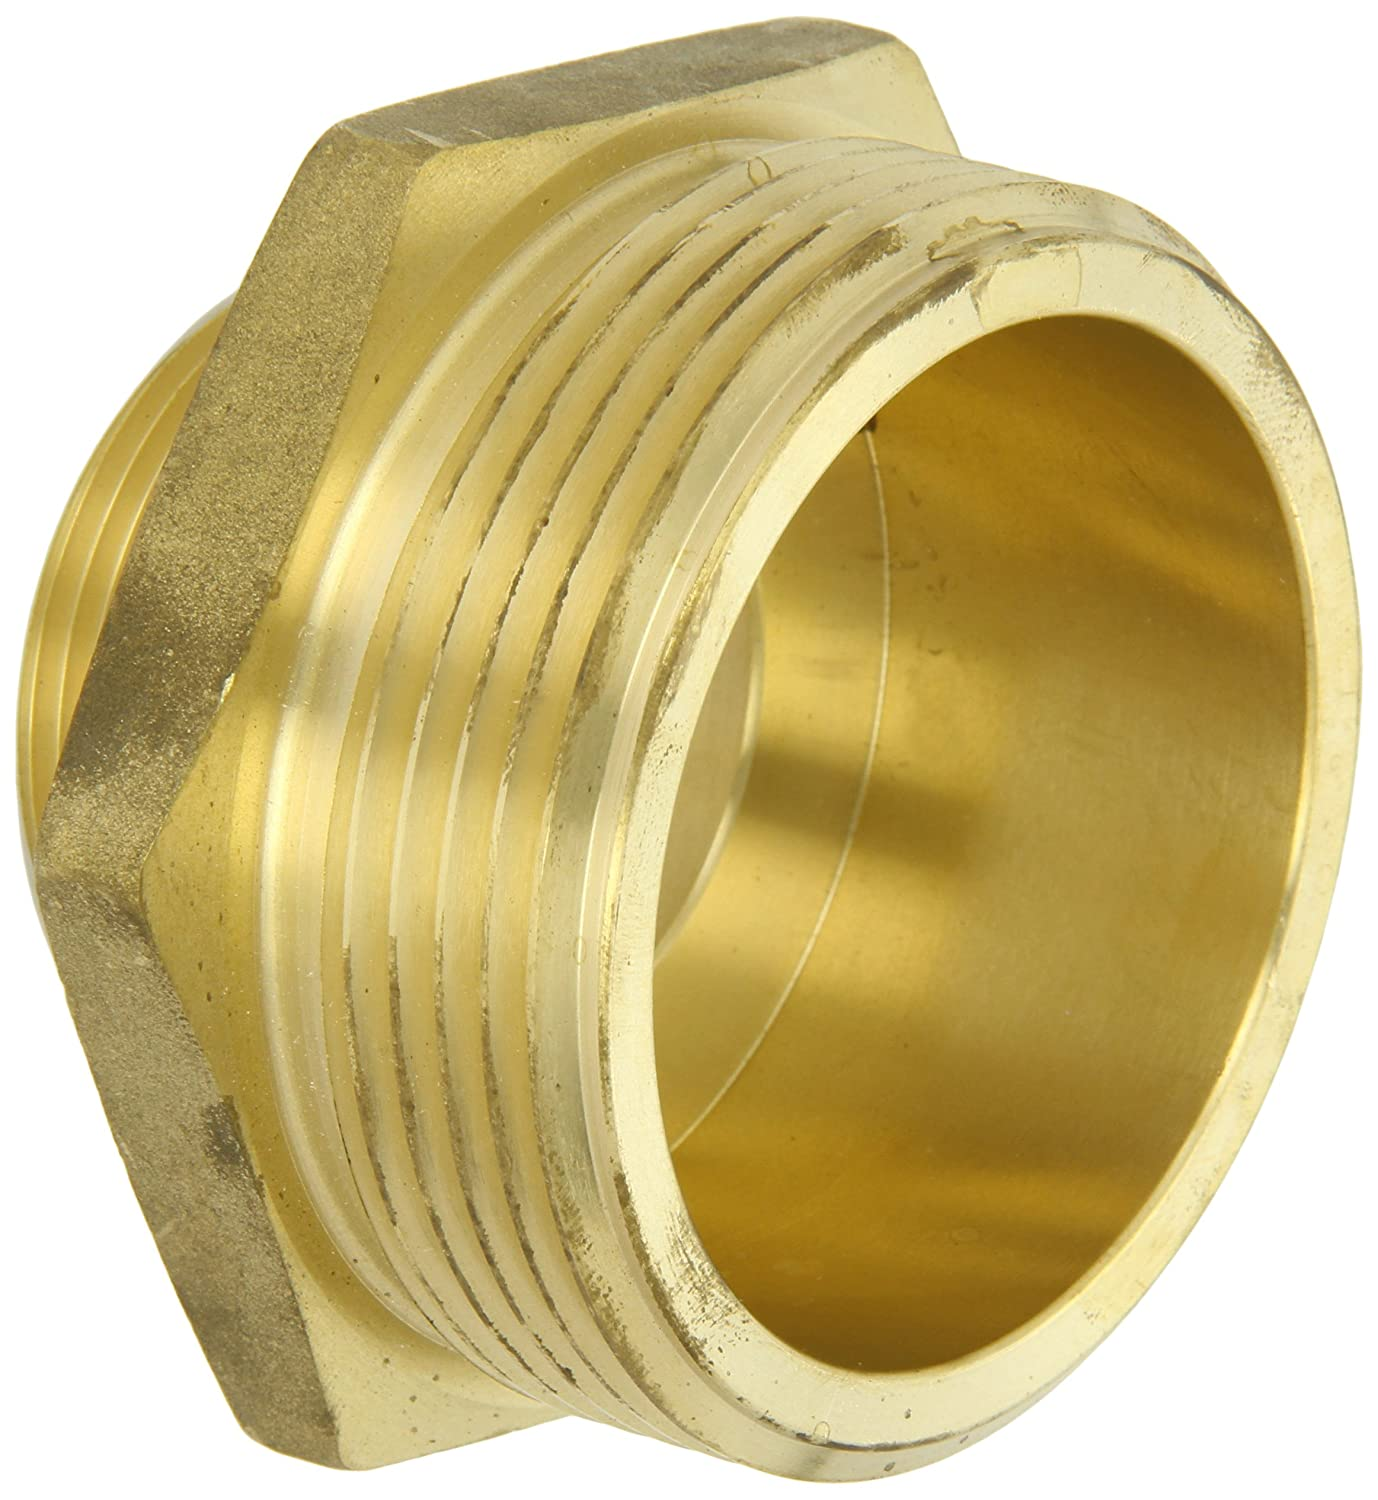 1-1//2 NPT Male x 2-1//2 NH Male Nipple Moon 358-1562521 Brass Fire Hose Adapter